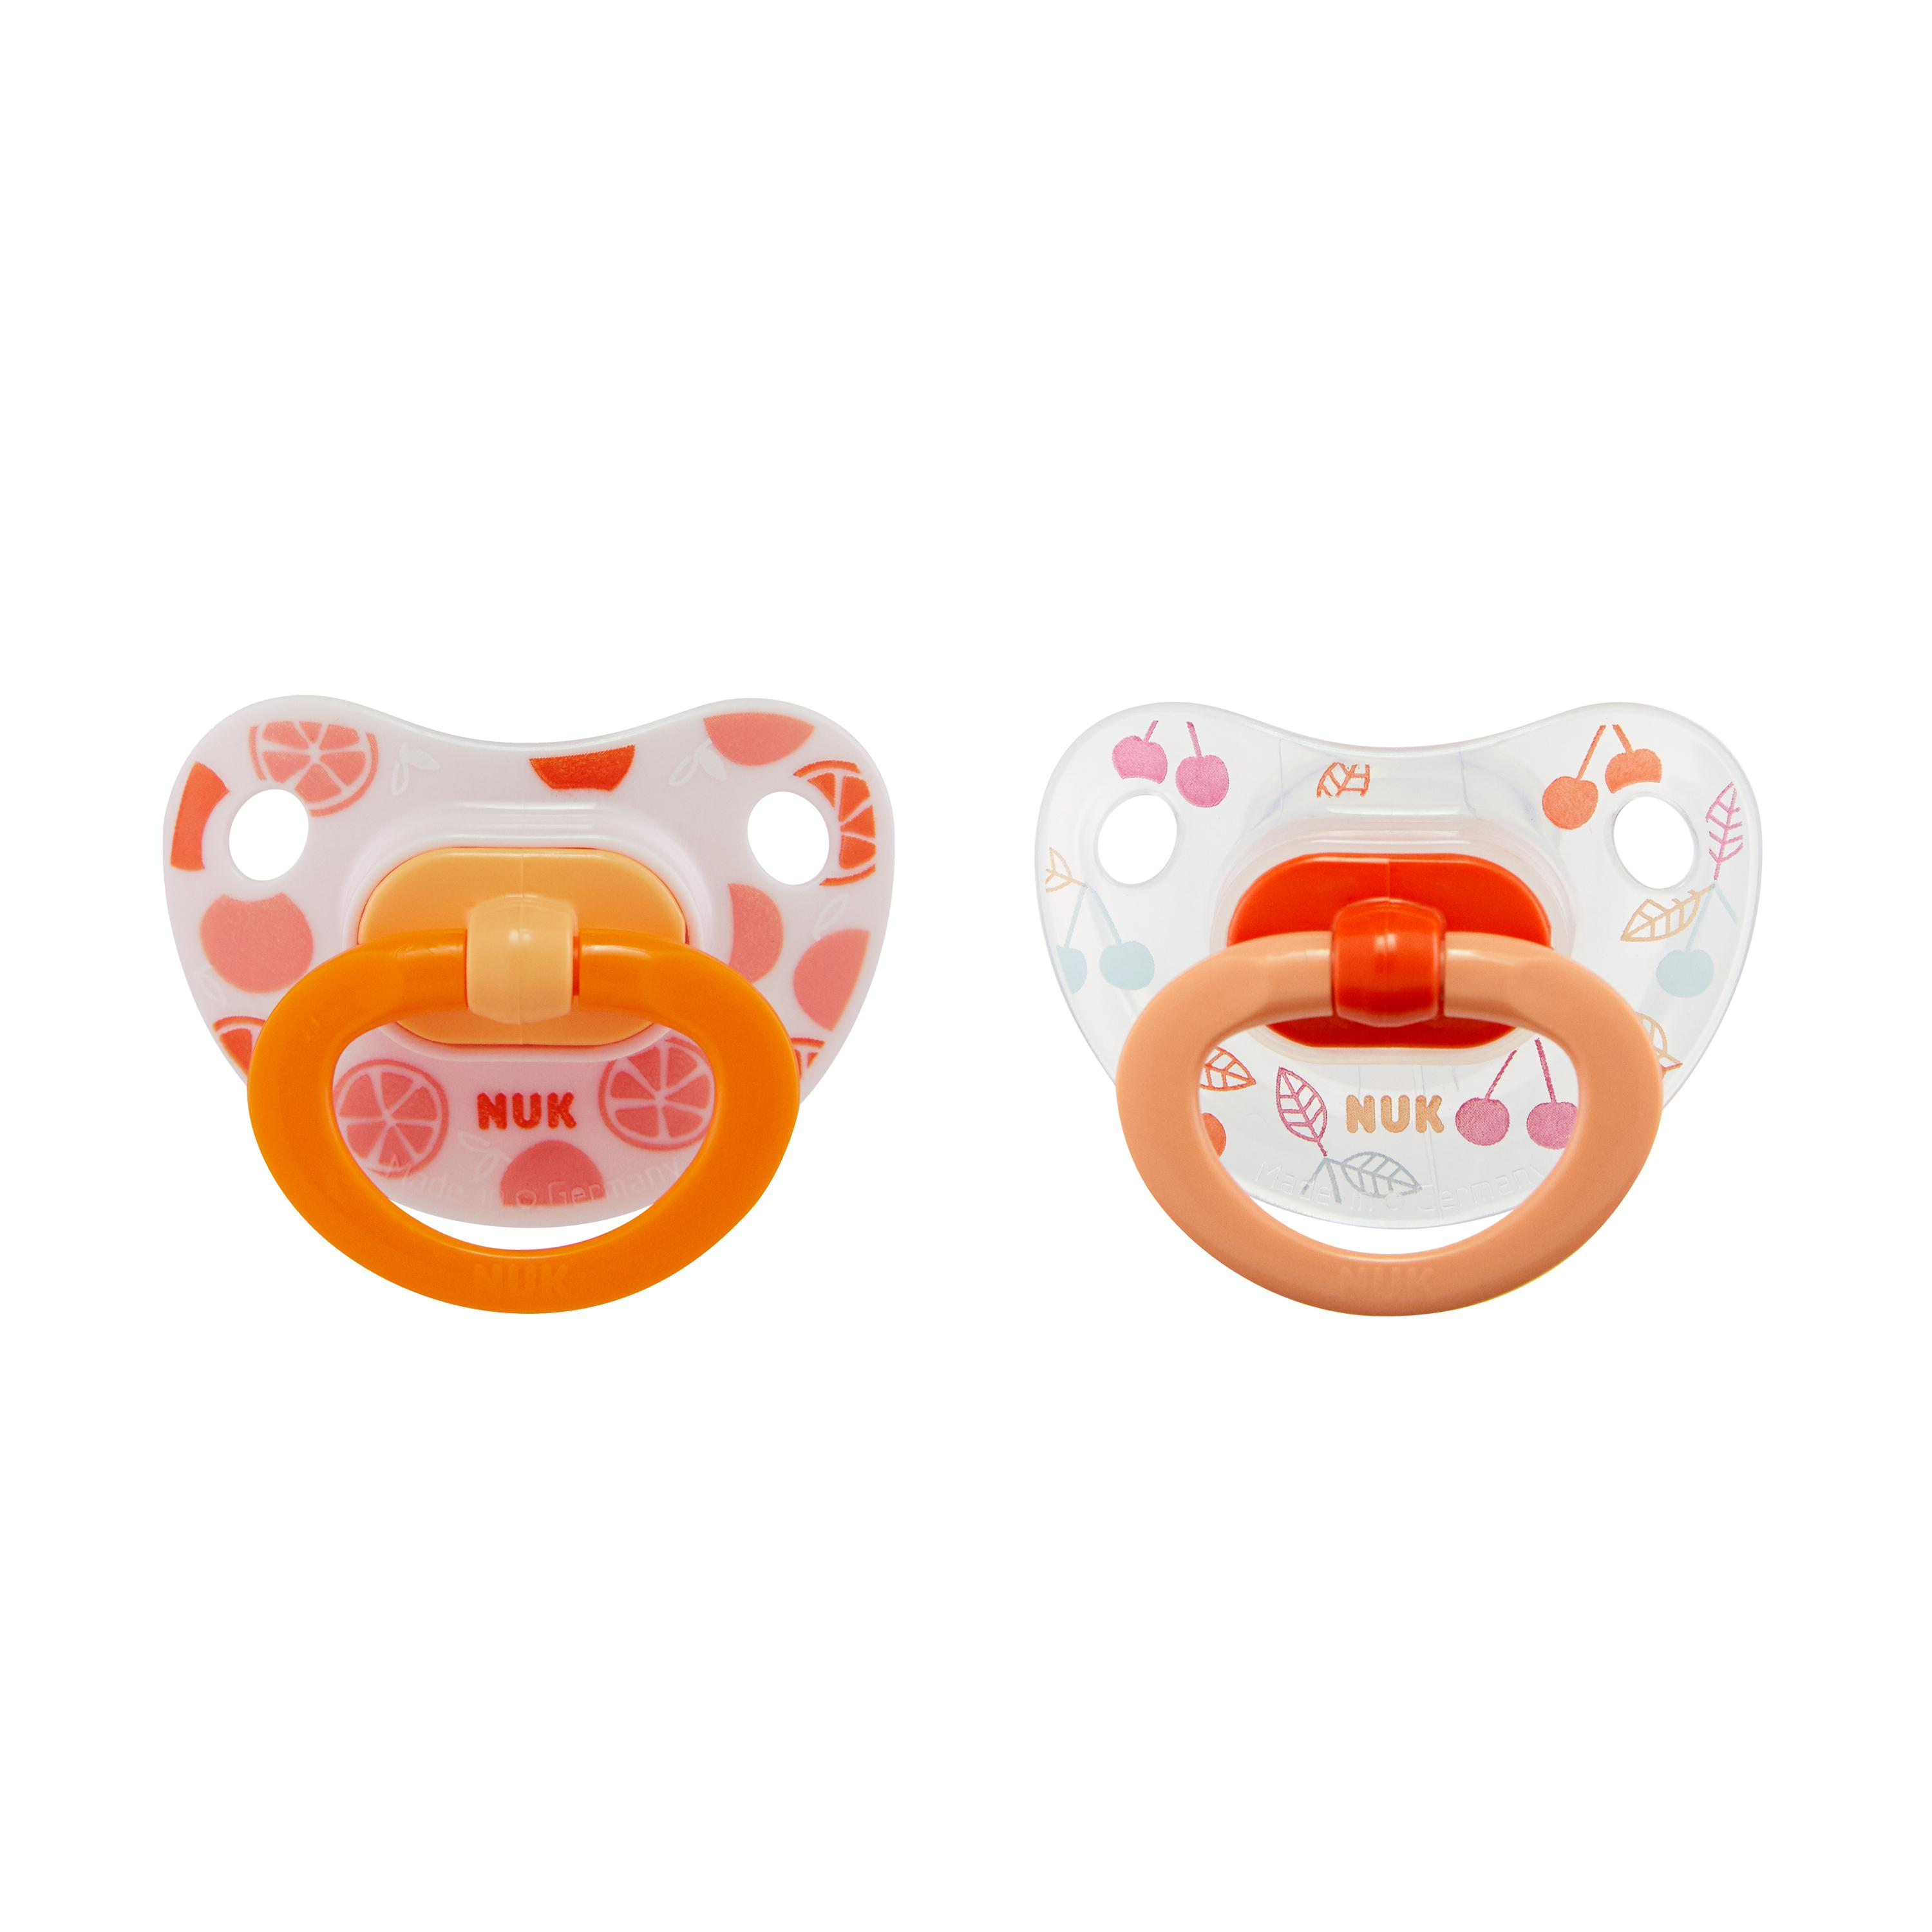 NUK® Orthodontic Pacifiers, 18-36 Months, 2-Pack Product Image 6 of 7